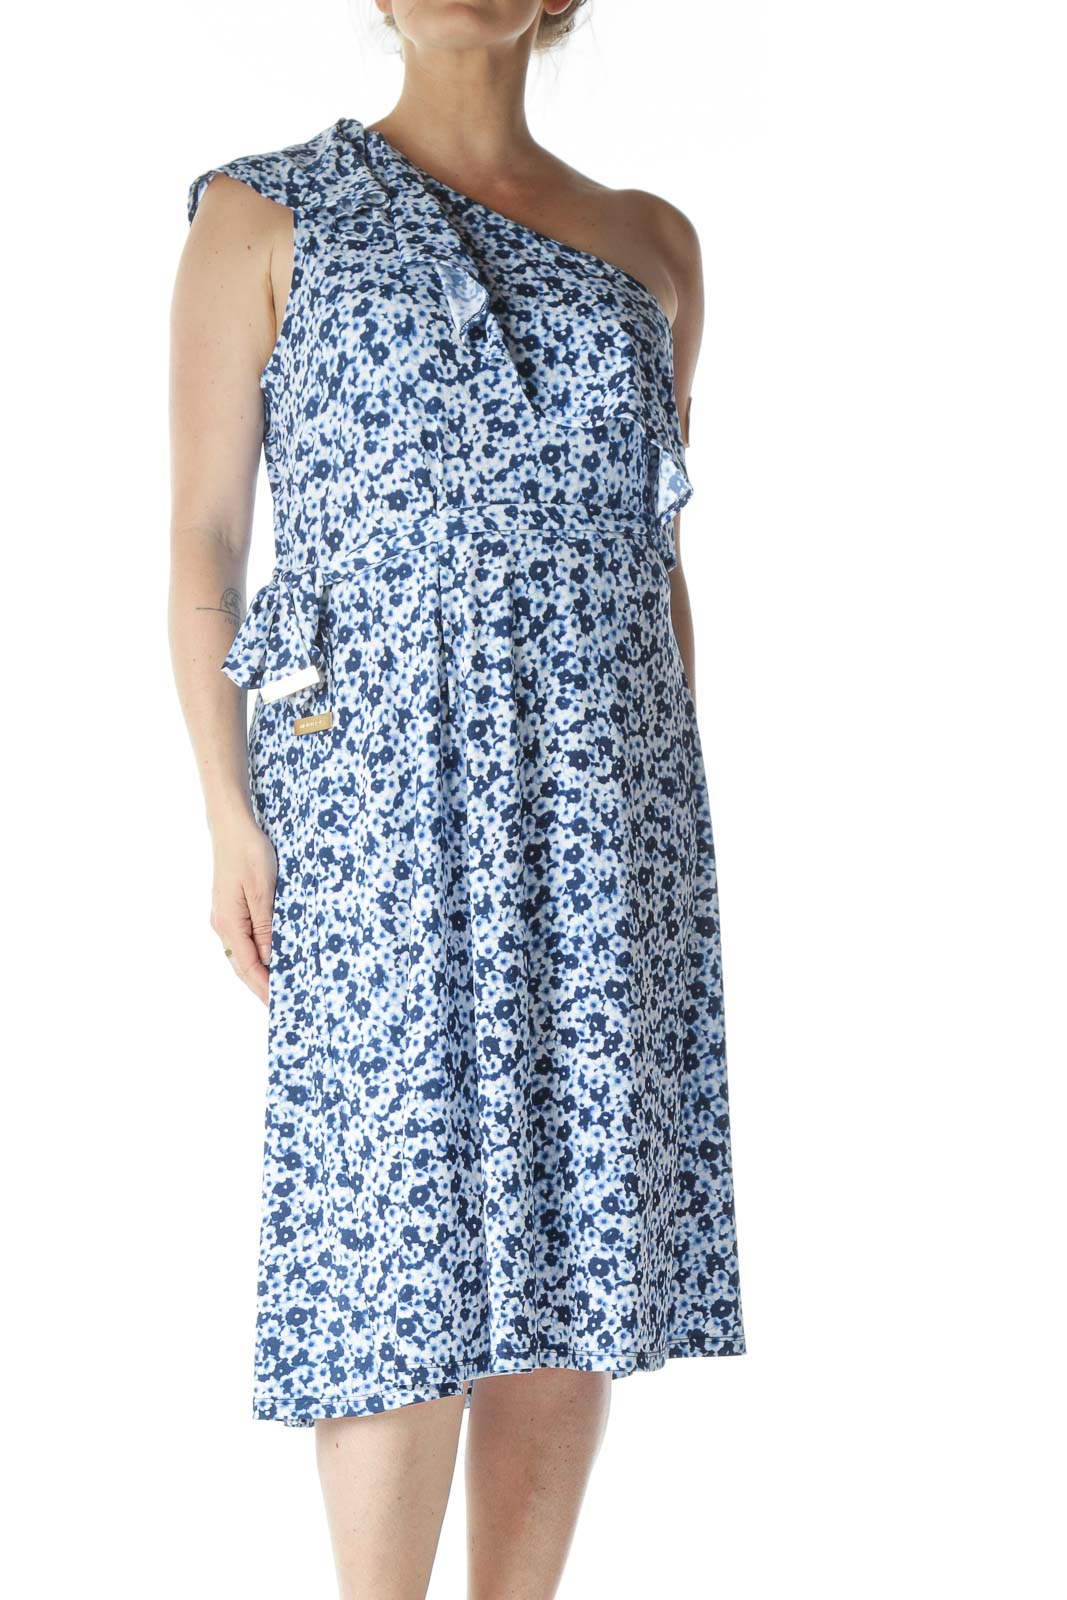 Blue Floral Print One Shoulder Dress